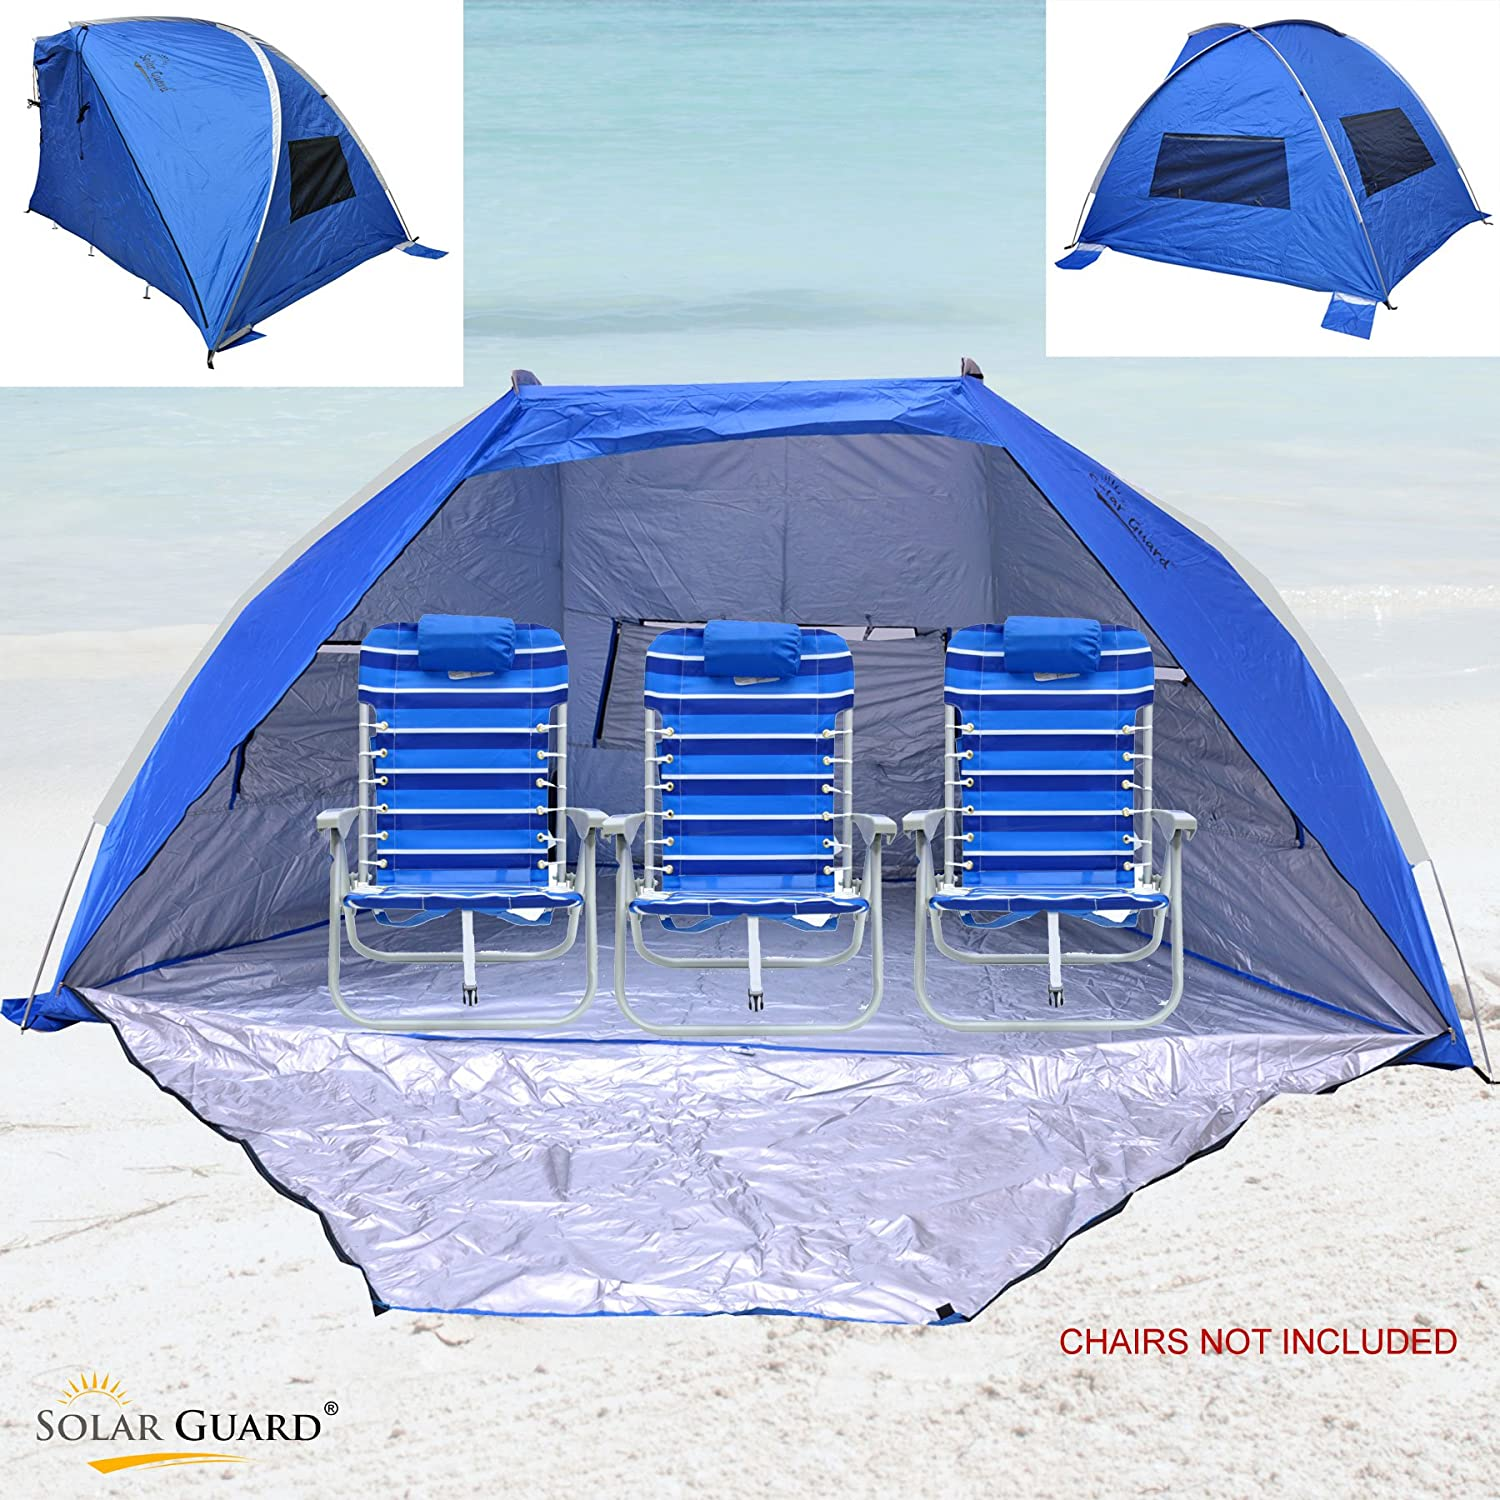 Solar Guard Jumbo Deluxe Beach Shelter with Ventilation Panels and Door best wind resistant beach tent